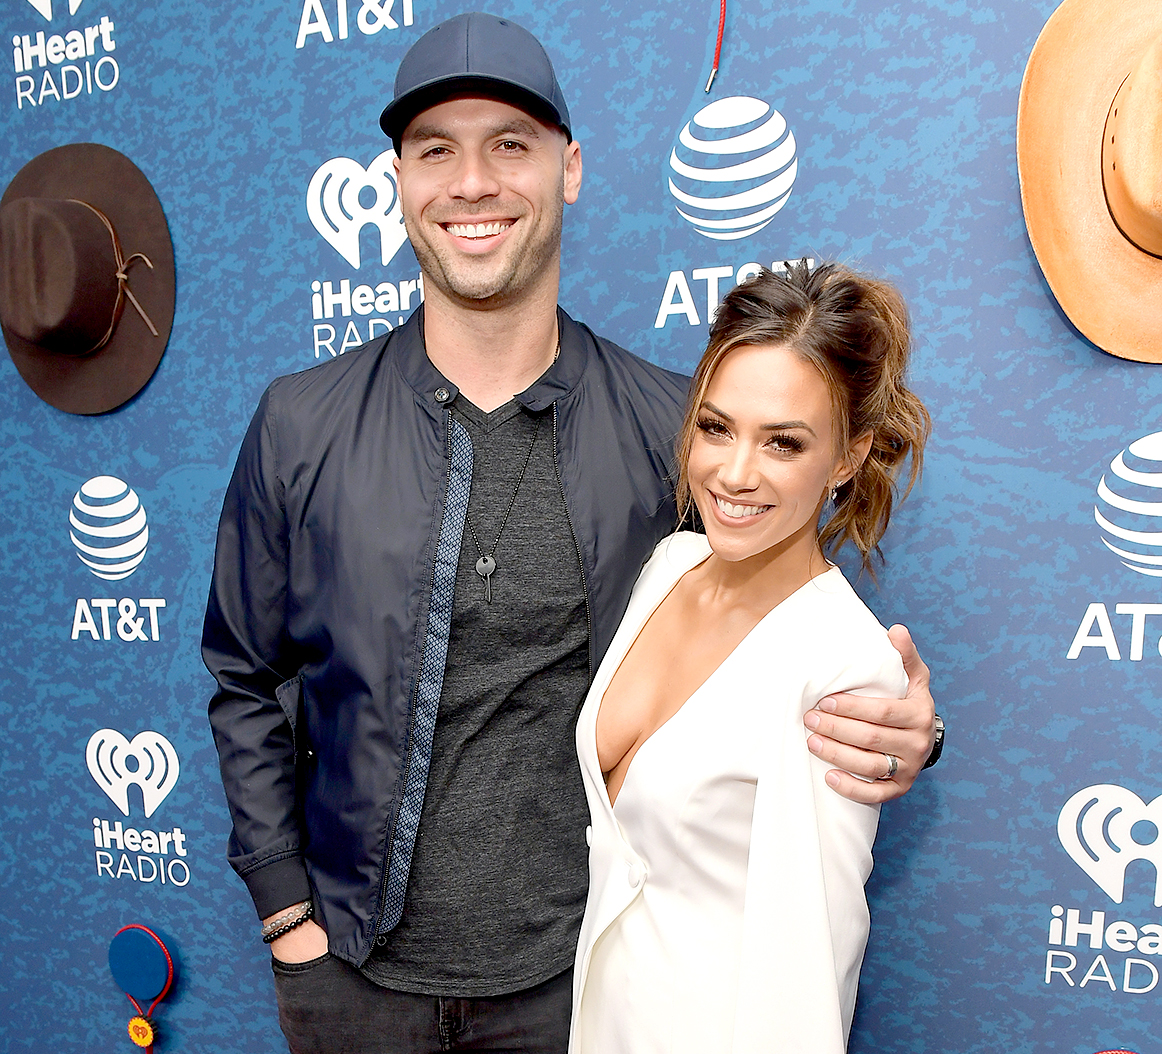 Jana Kramer Is Pregnant With Baby No. 2 After Suffering Multiple Miscarriages